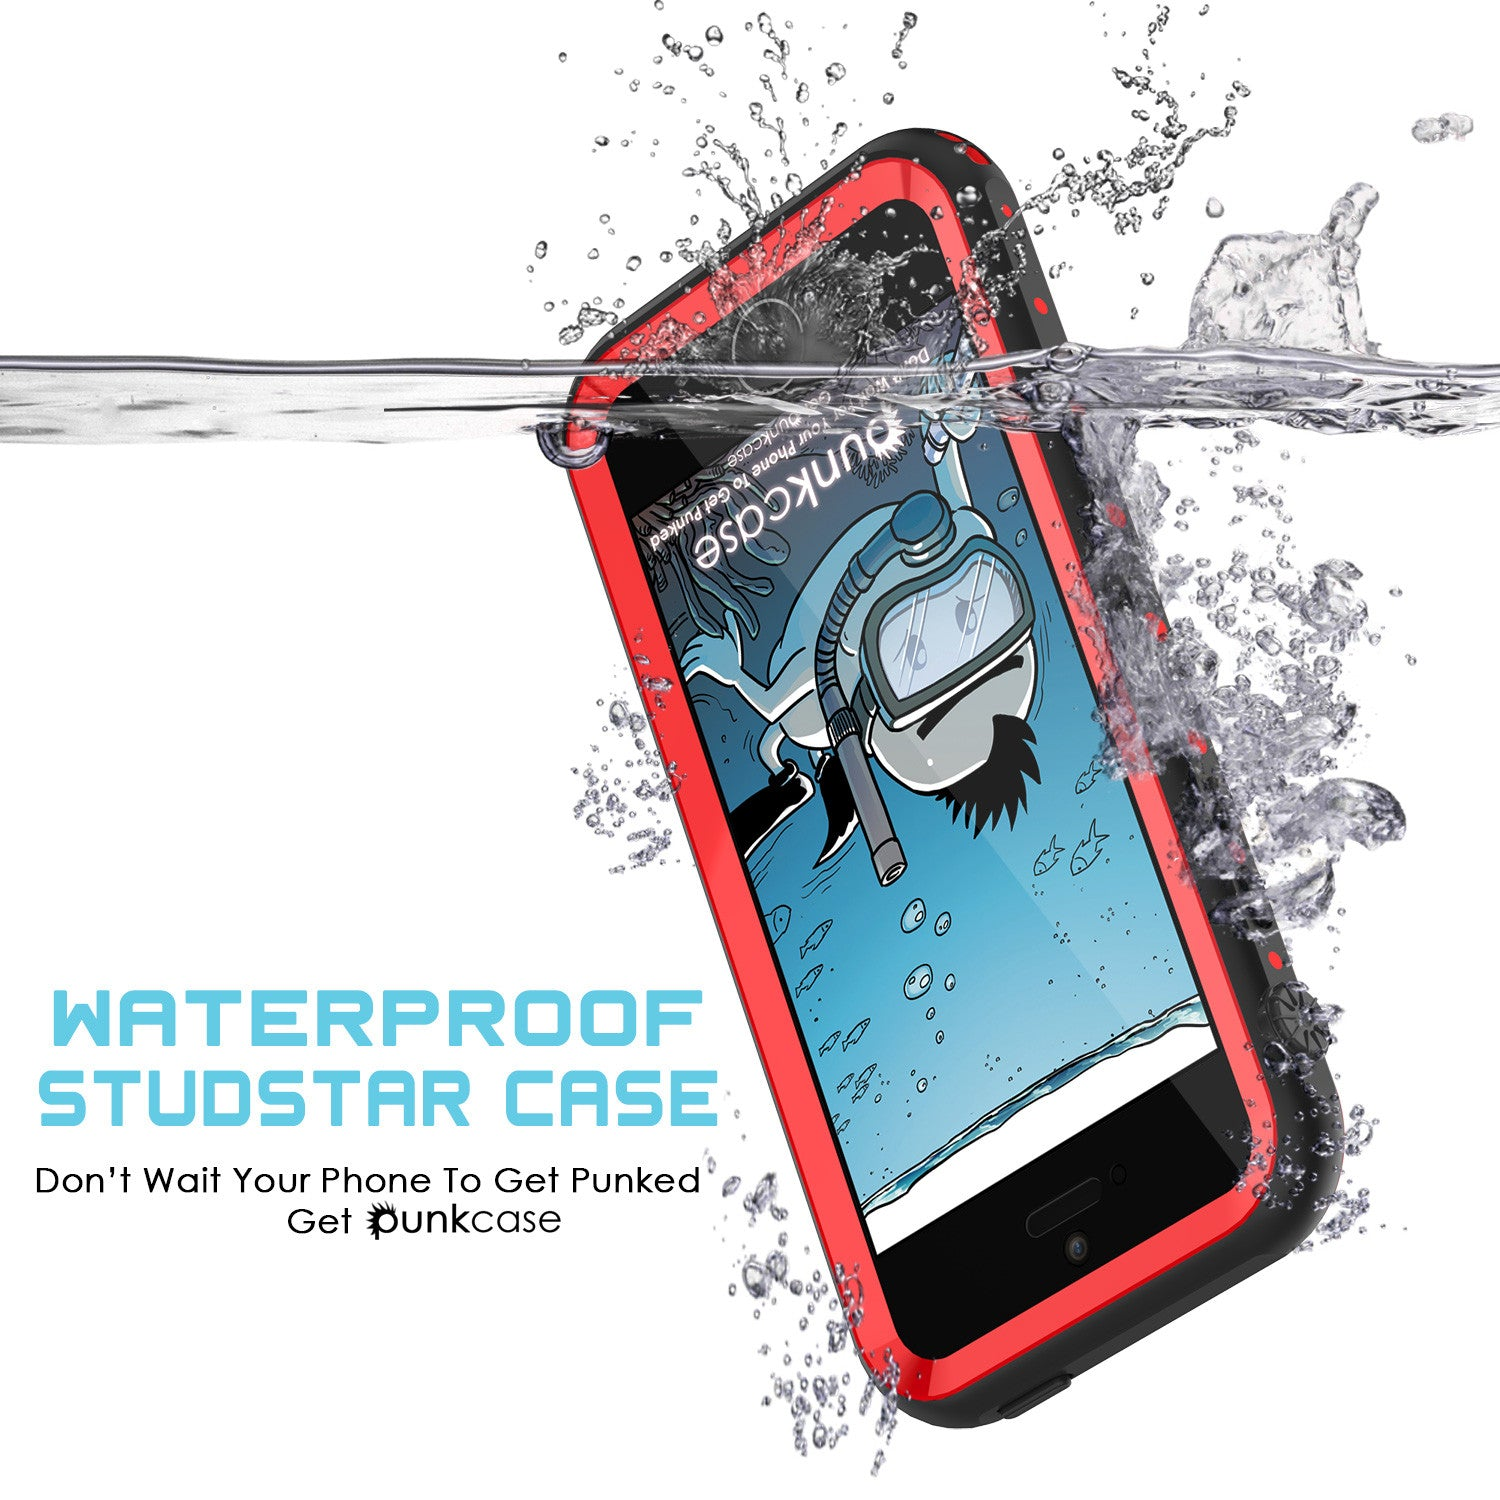 iPhone SE/5S/5 Waterproof Case, PunkCase StudStar Red Case Shock/Dirt/Snow Proof | Lifetime Warranty